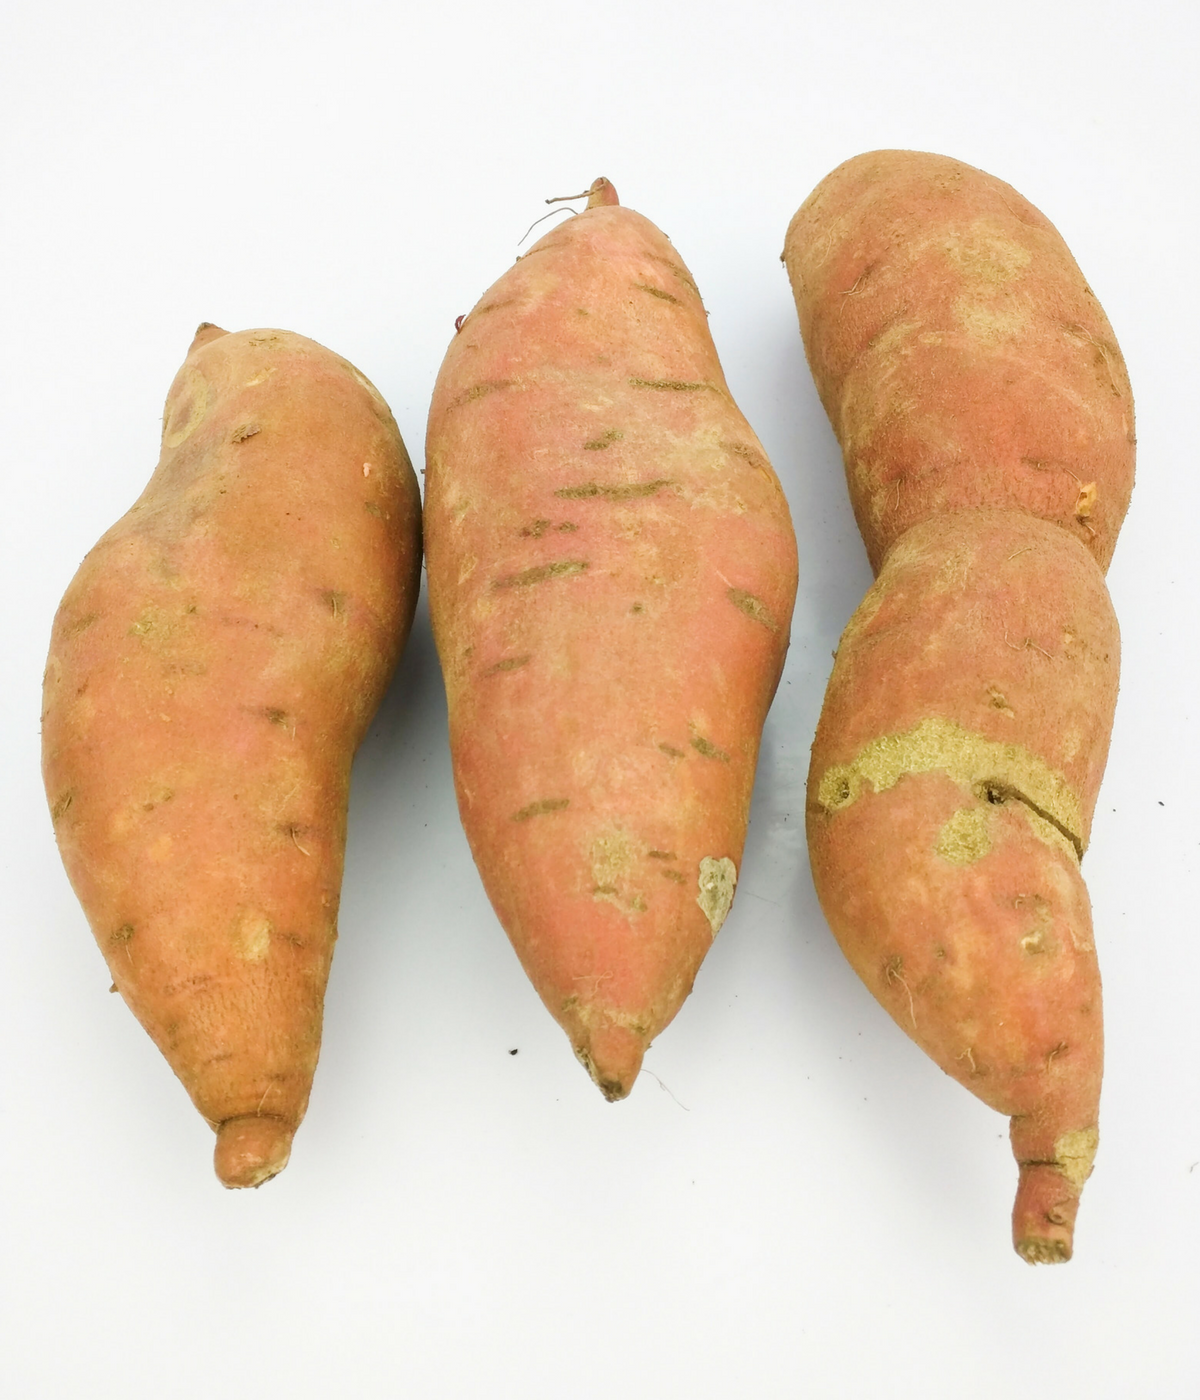 Salad toppers? Cook up some sweet potatoes and use them as a salad topping, along with prosciutto di parma, Swiss cheese, tarragon, and a scrumptious Dijon dressing--lectin free and Plant Paradox approved!